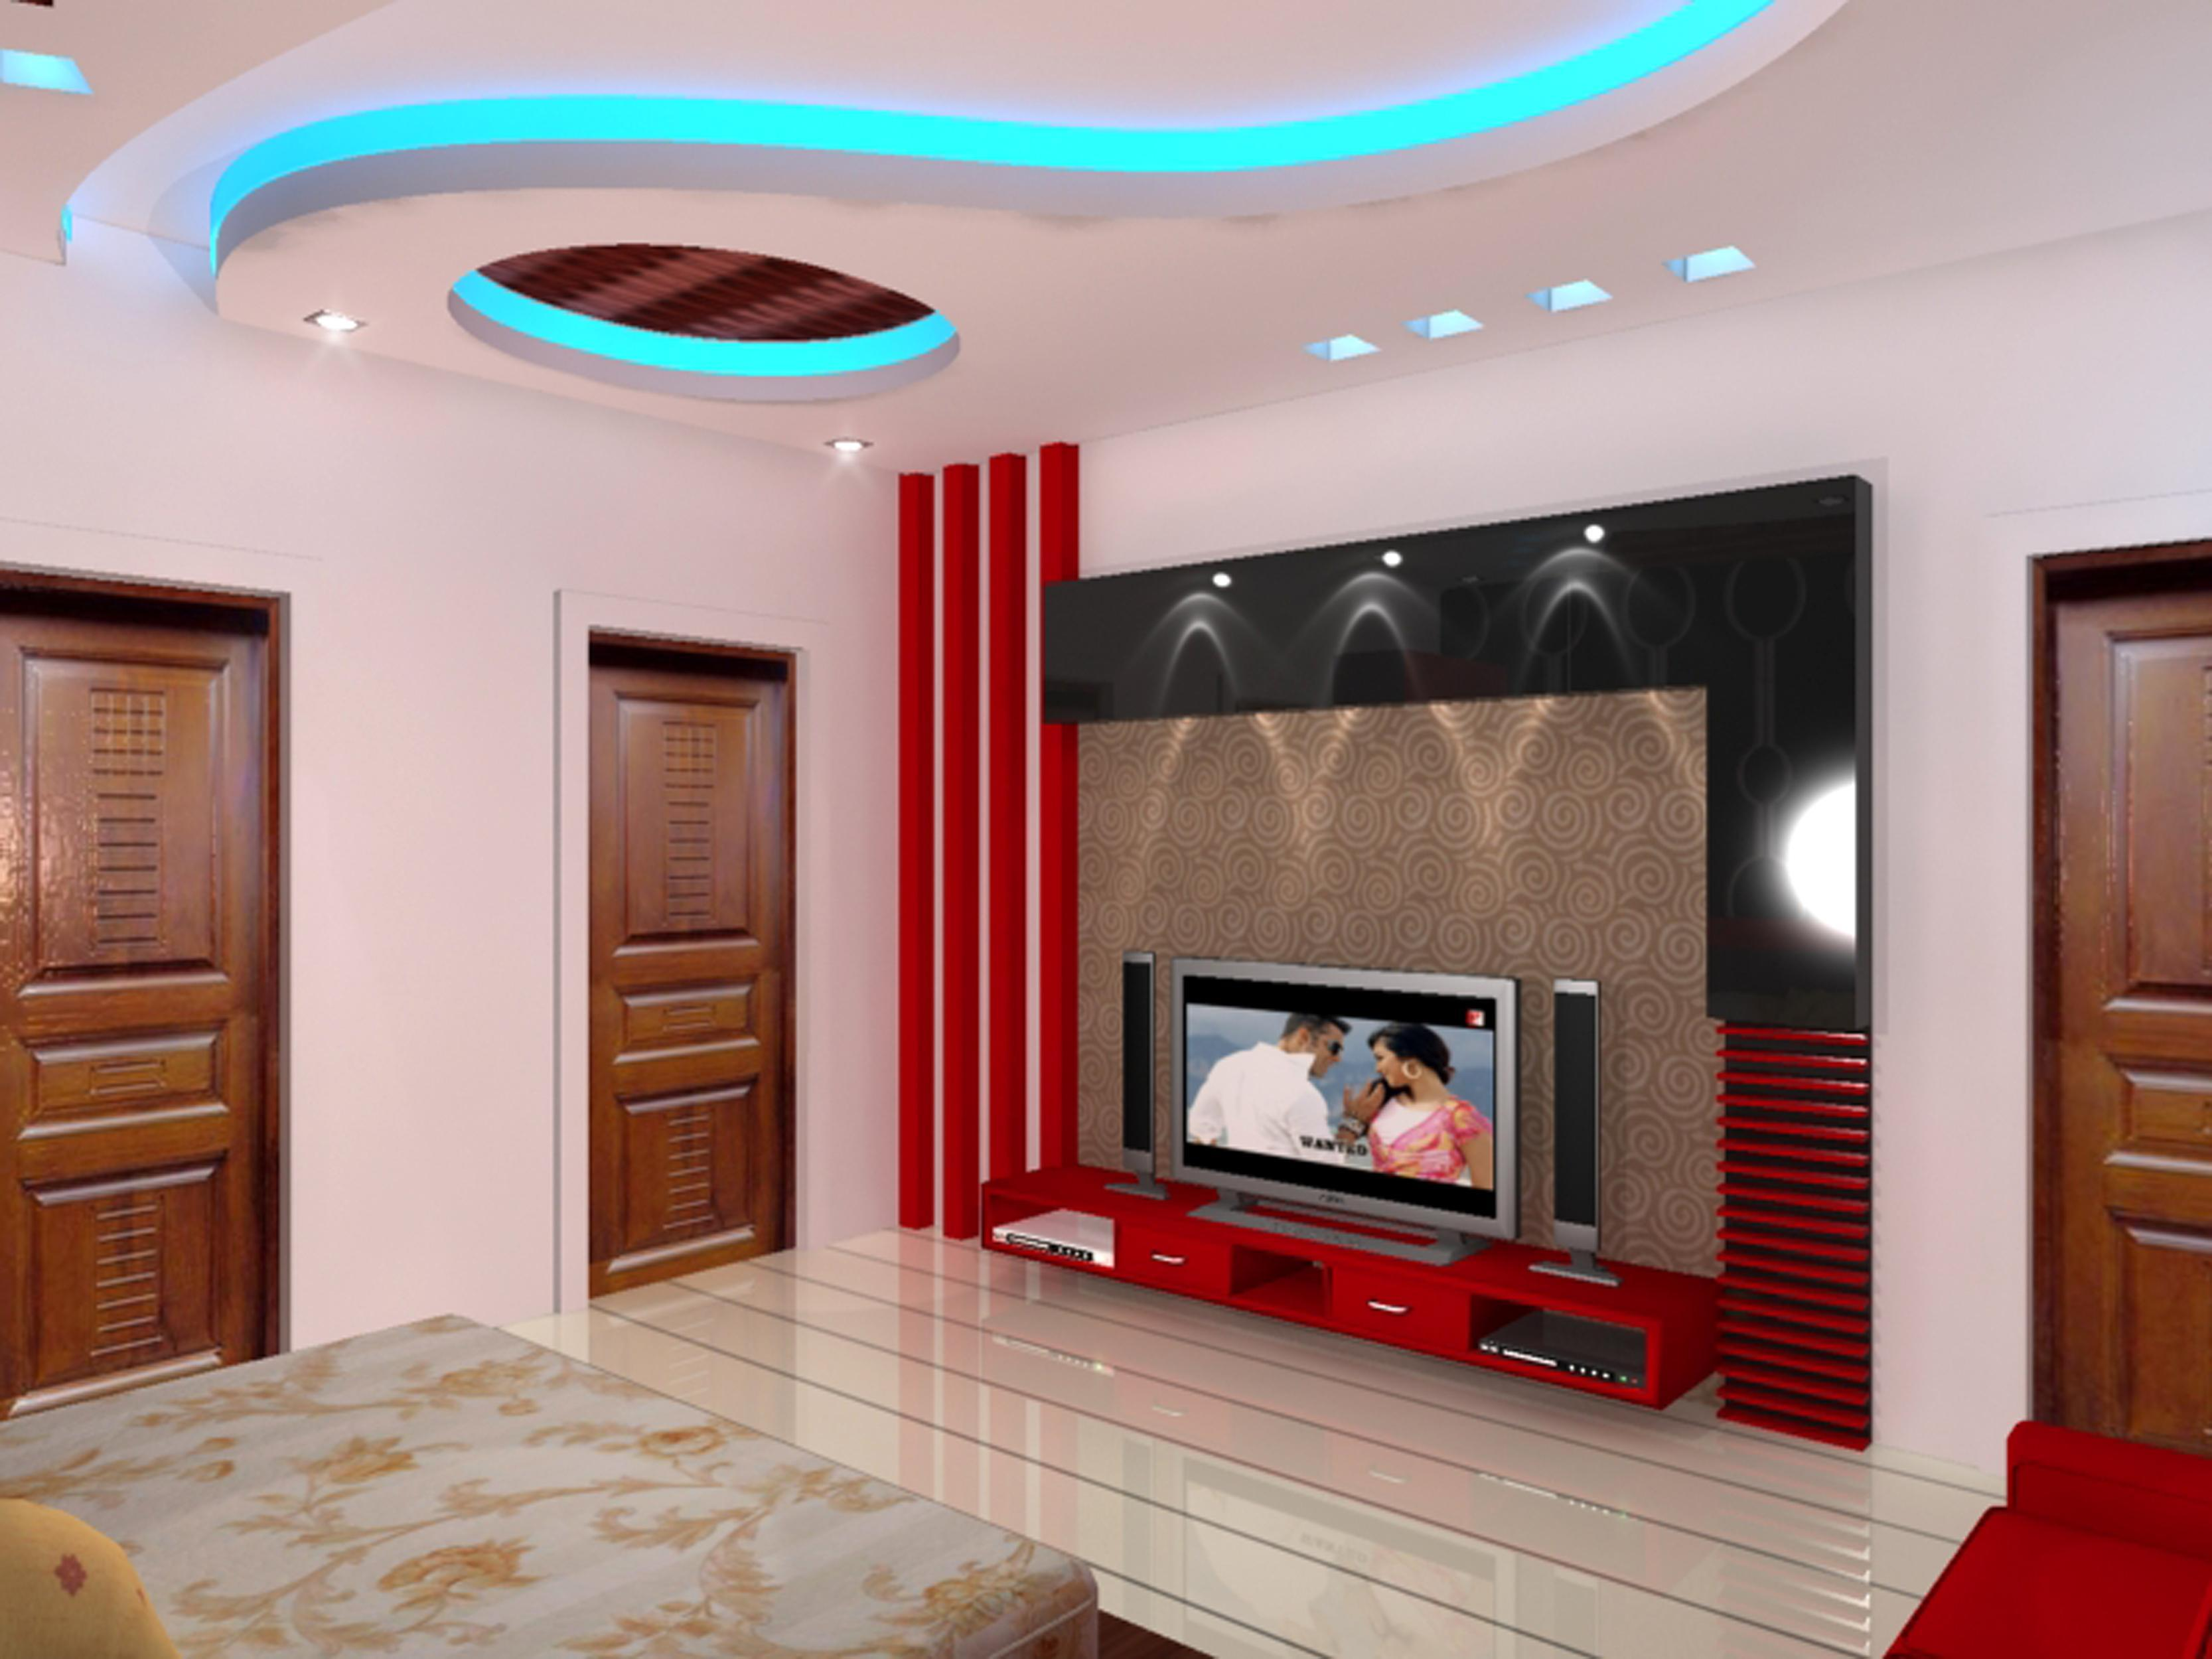 Lcd Wall Design In Bedroom Bedroom Ideas - Lcd wall design in bedroom